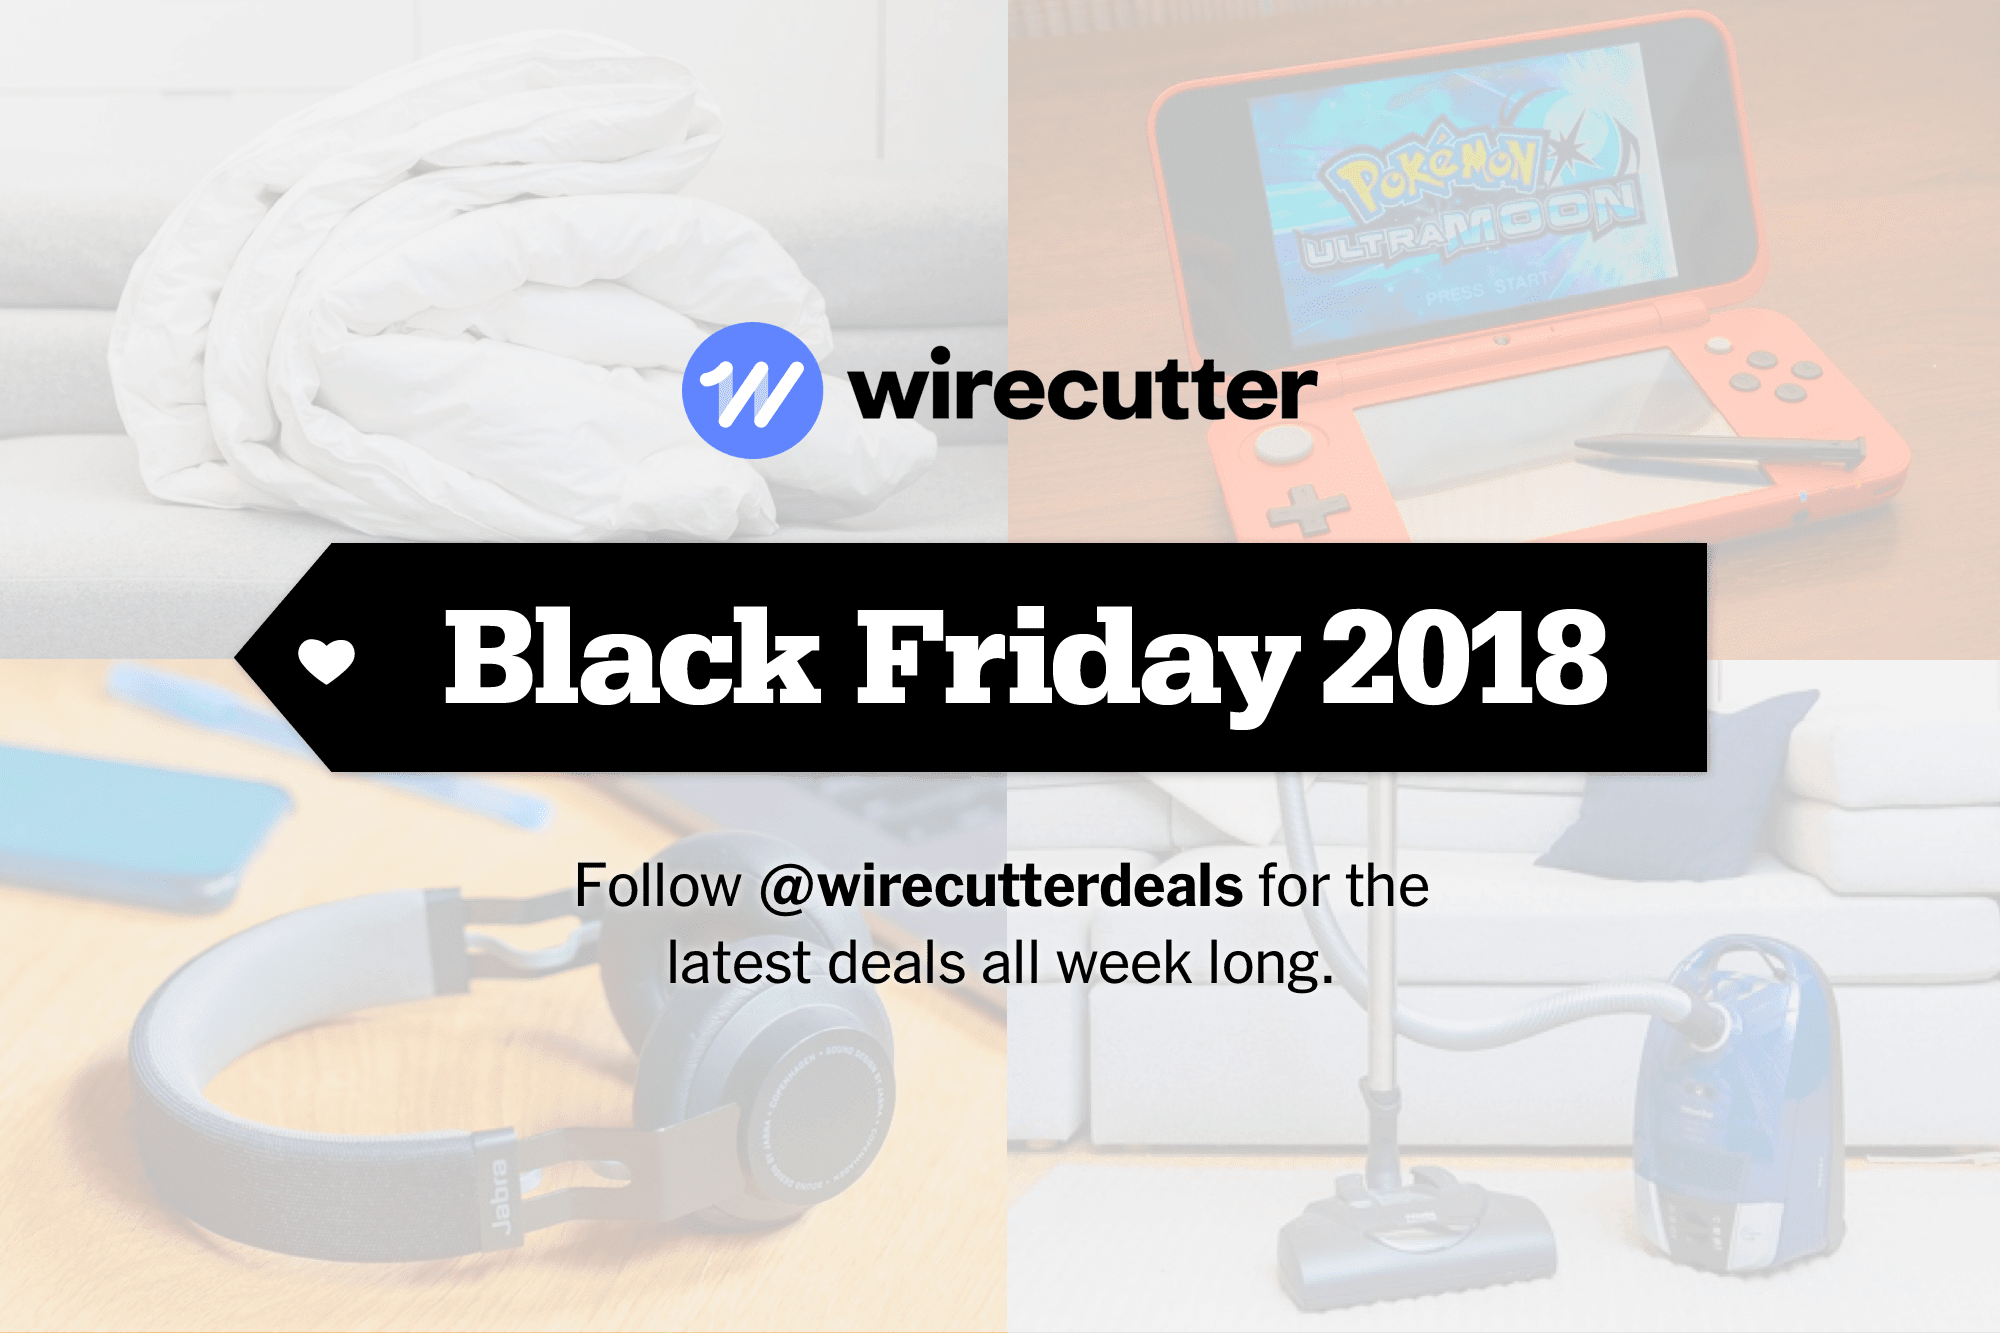 42866f010 More early Black Friday 2018 deals